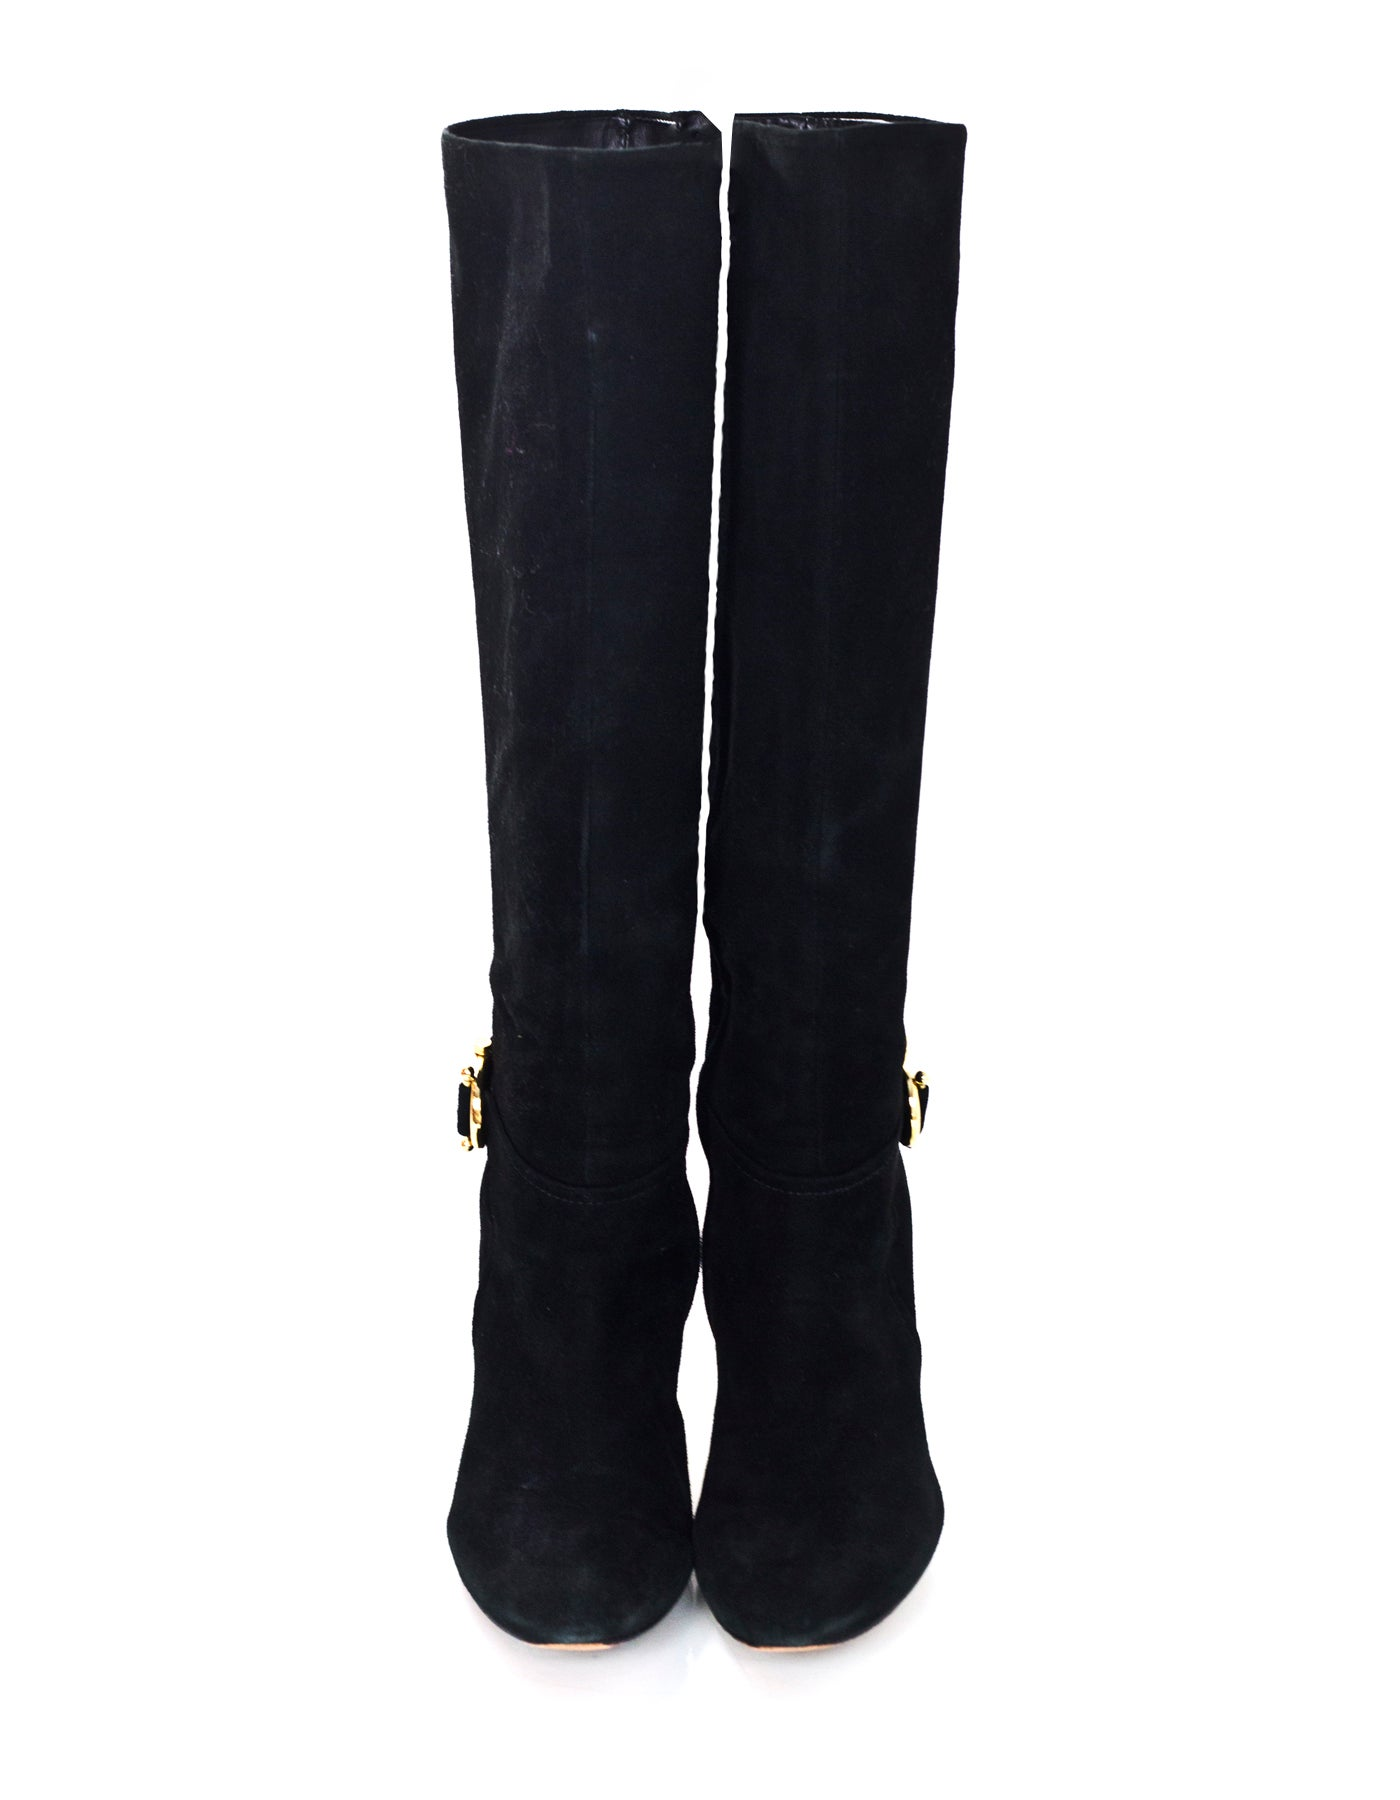 5b30d414651 Tory Burch Black Suede Boots Sz 8 For Sale at 1stdibs